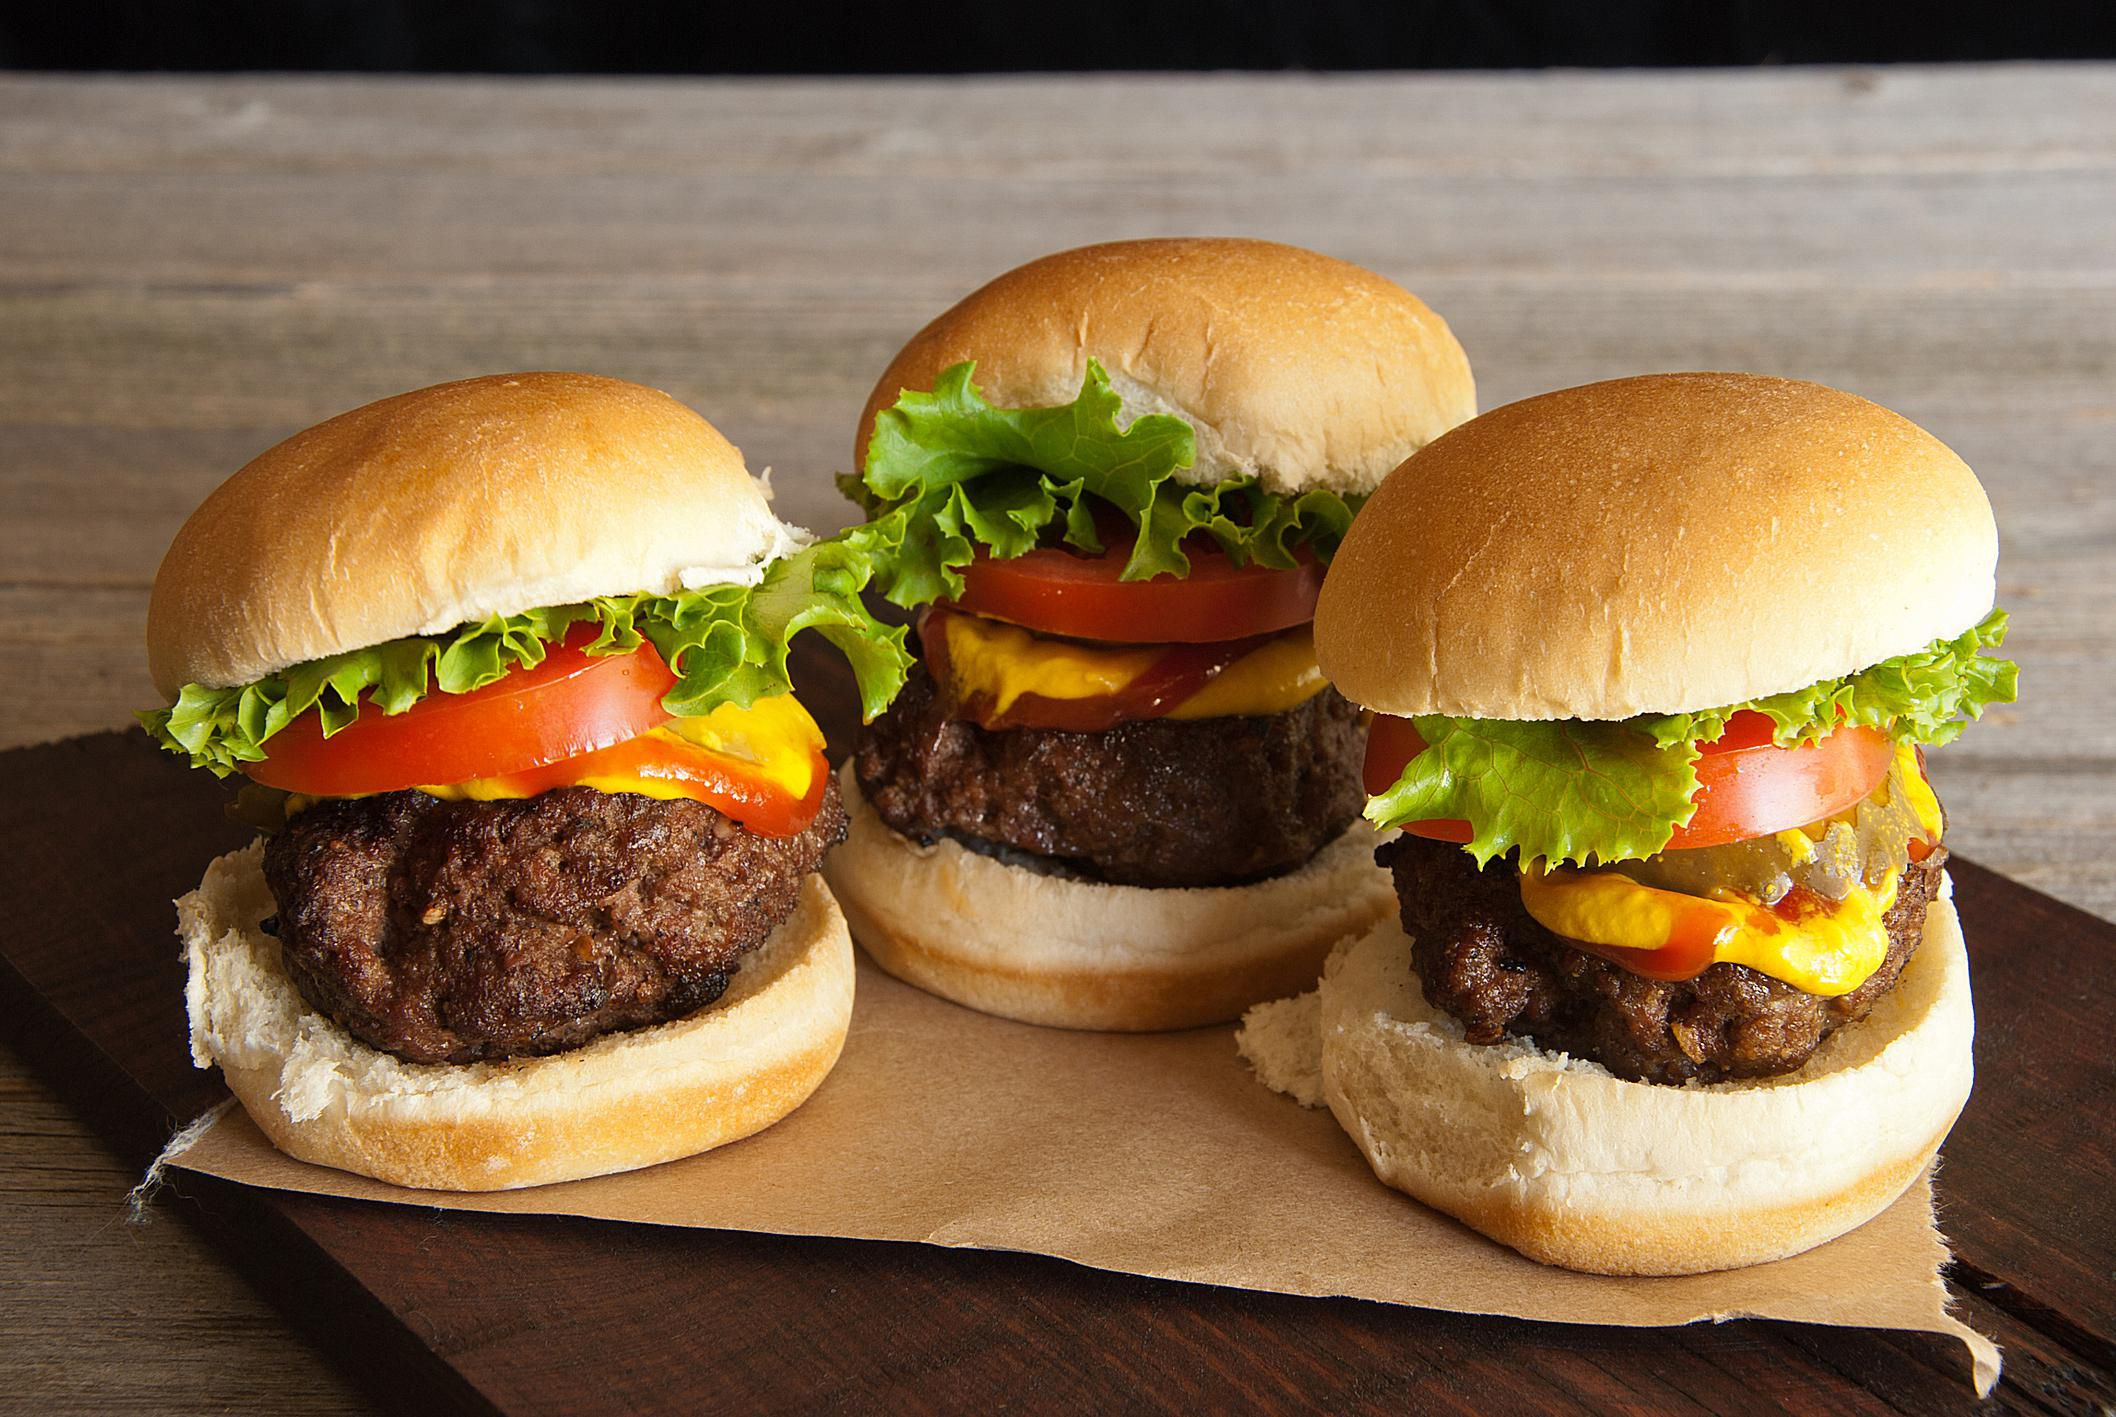 All-American-Sliders-58a72ba65f9b58a3c95db929.jpg